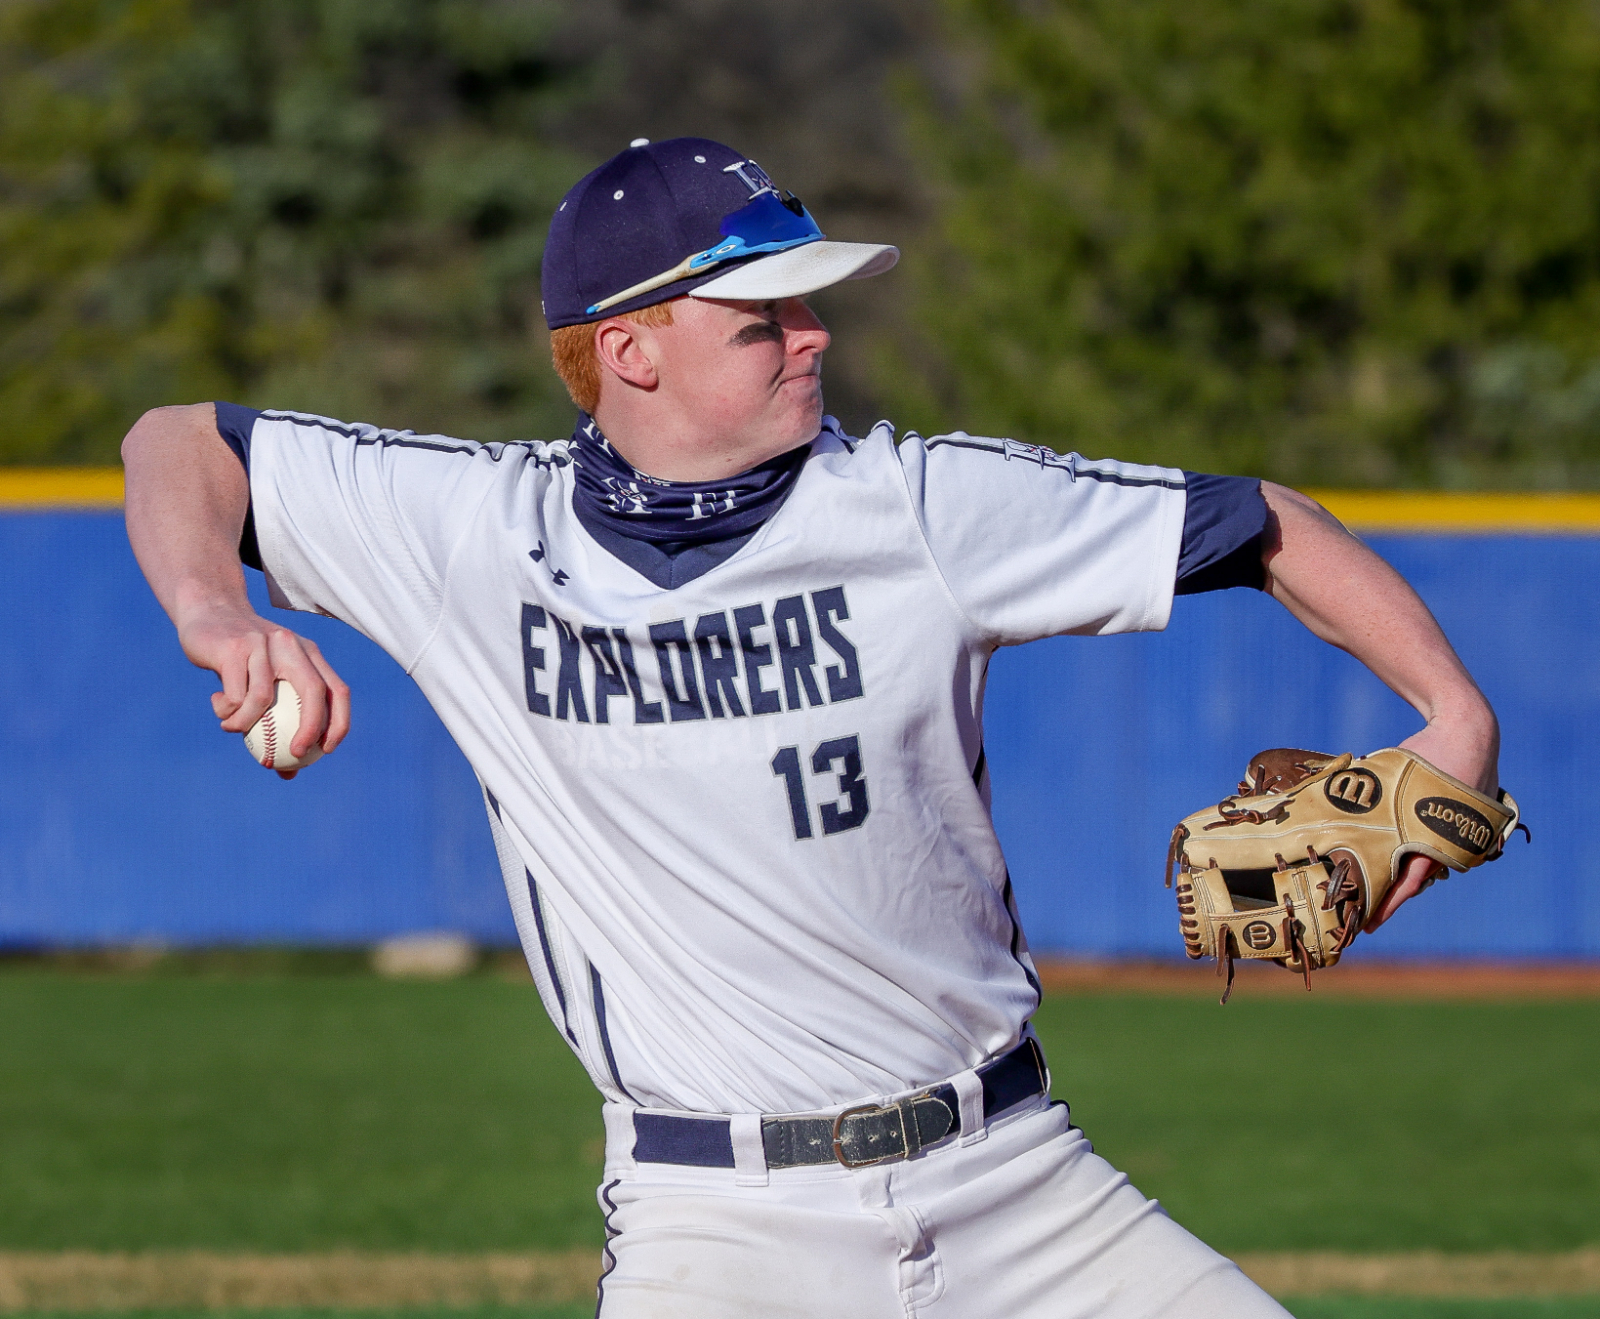 Images From Hudson Baseball vs Perry